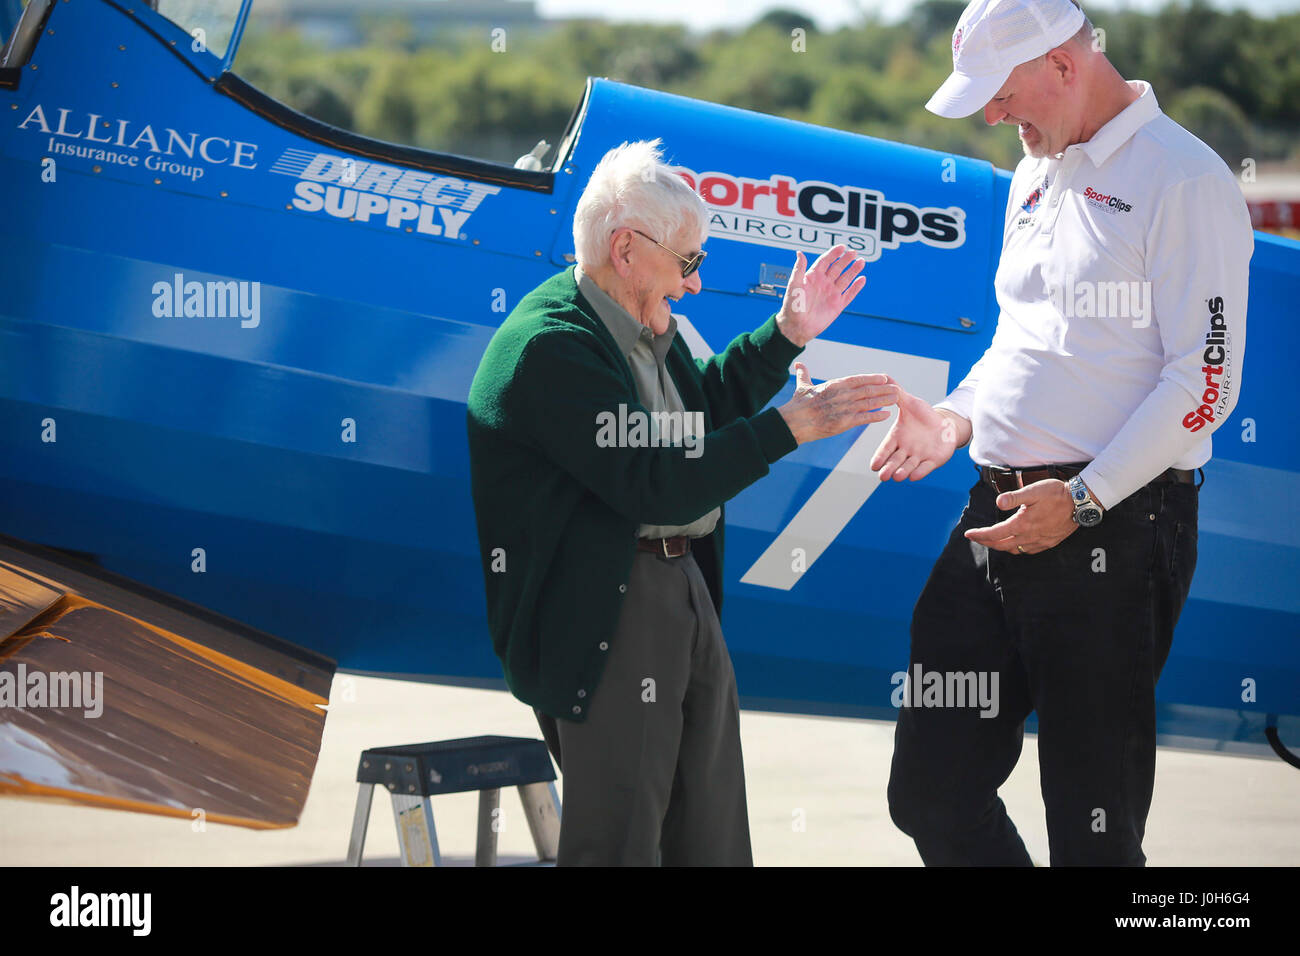 Florida, USA. 13th Apr, 2017. Duane Webster, age 95, shakes hands with Darryl Fisher (Founder - President - Pilot Stock Photo